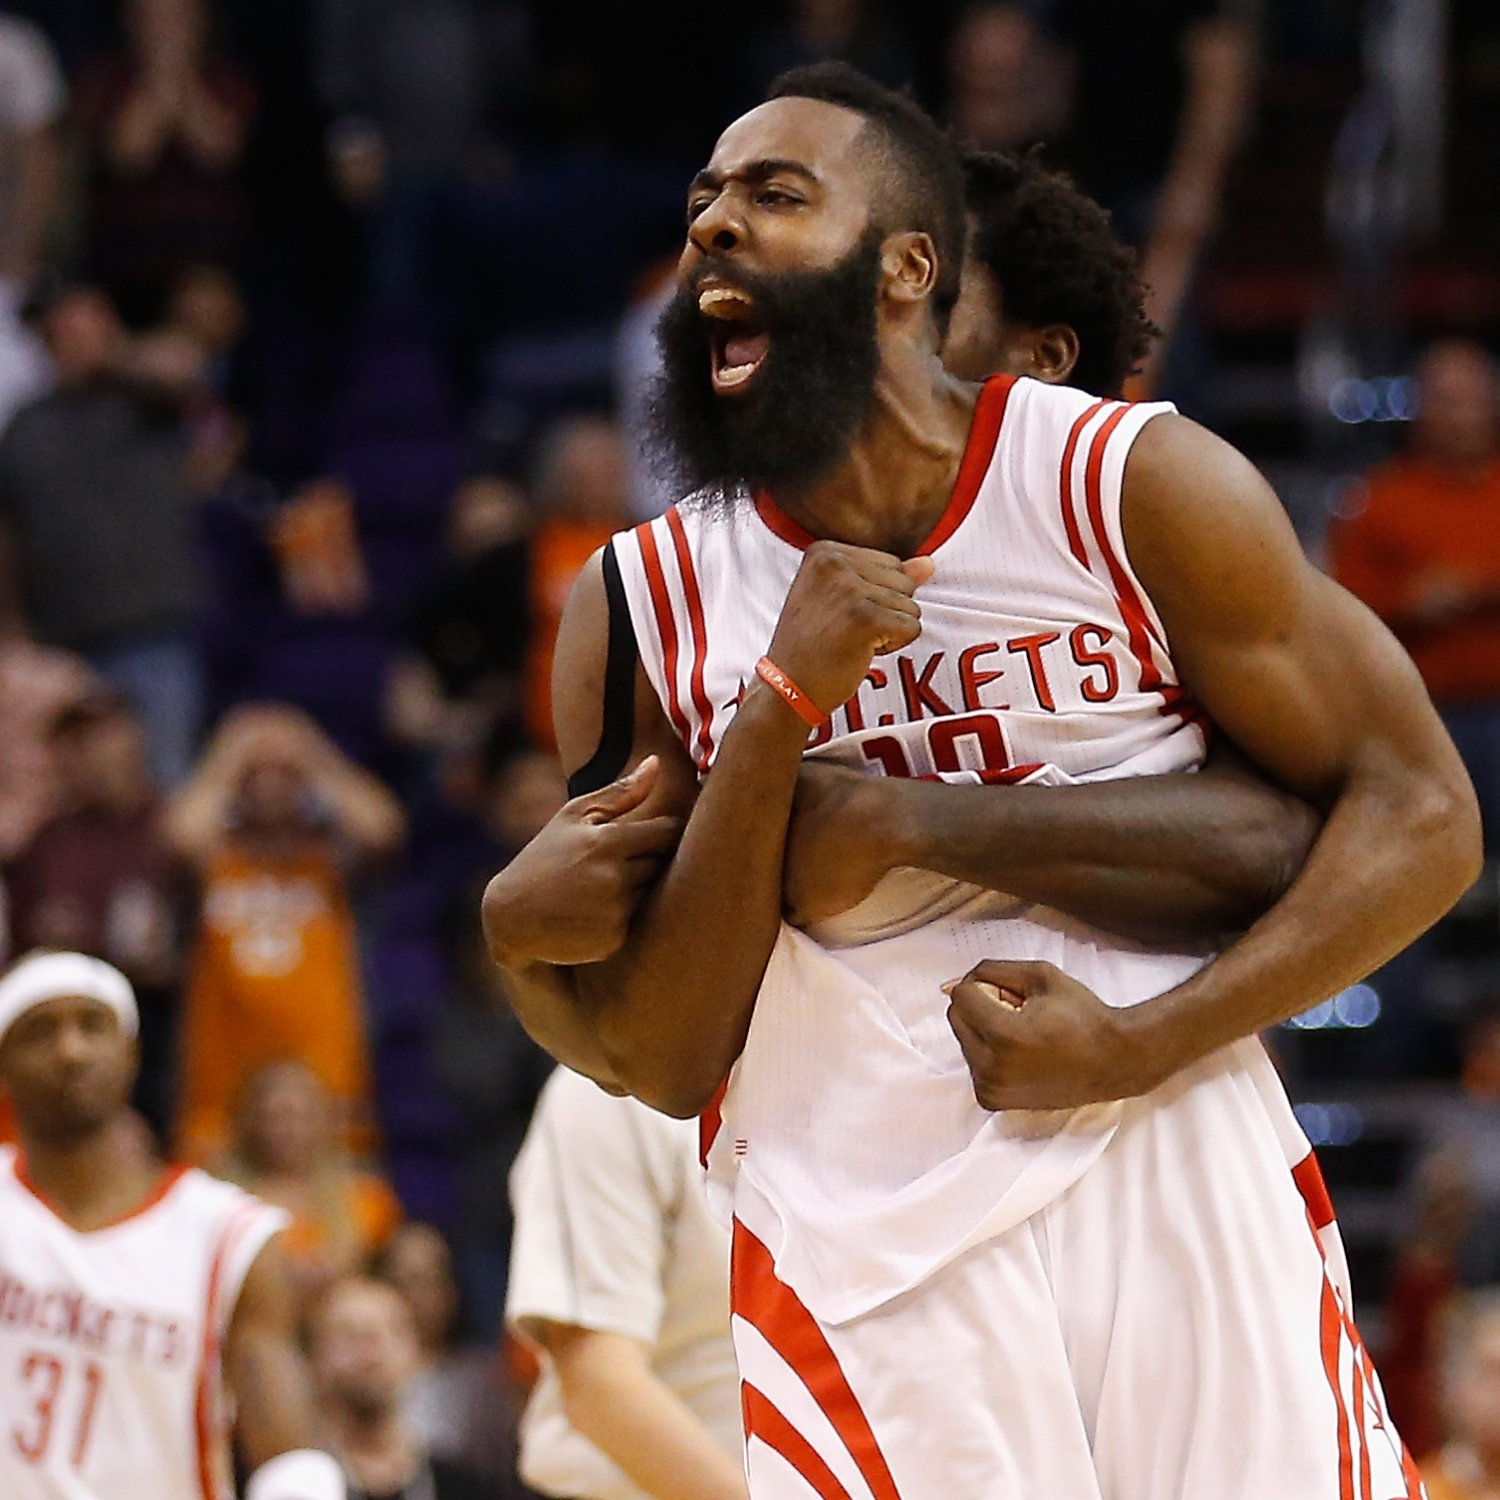 James Harden Injury Report: Dwight Howard Injury Gives James Harden Chance To Swing